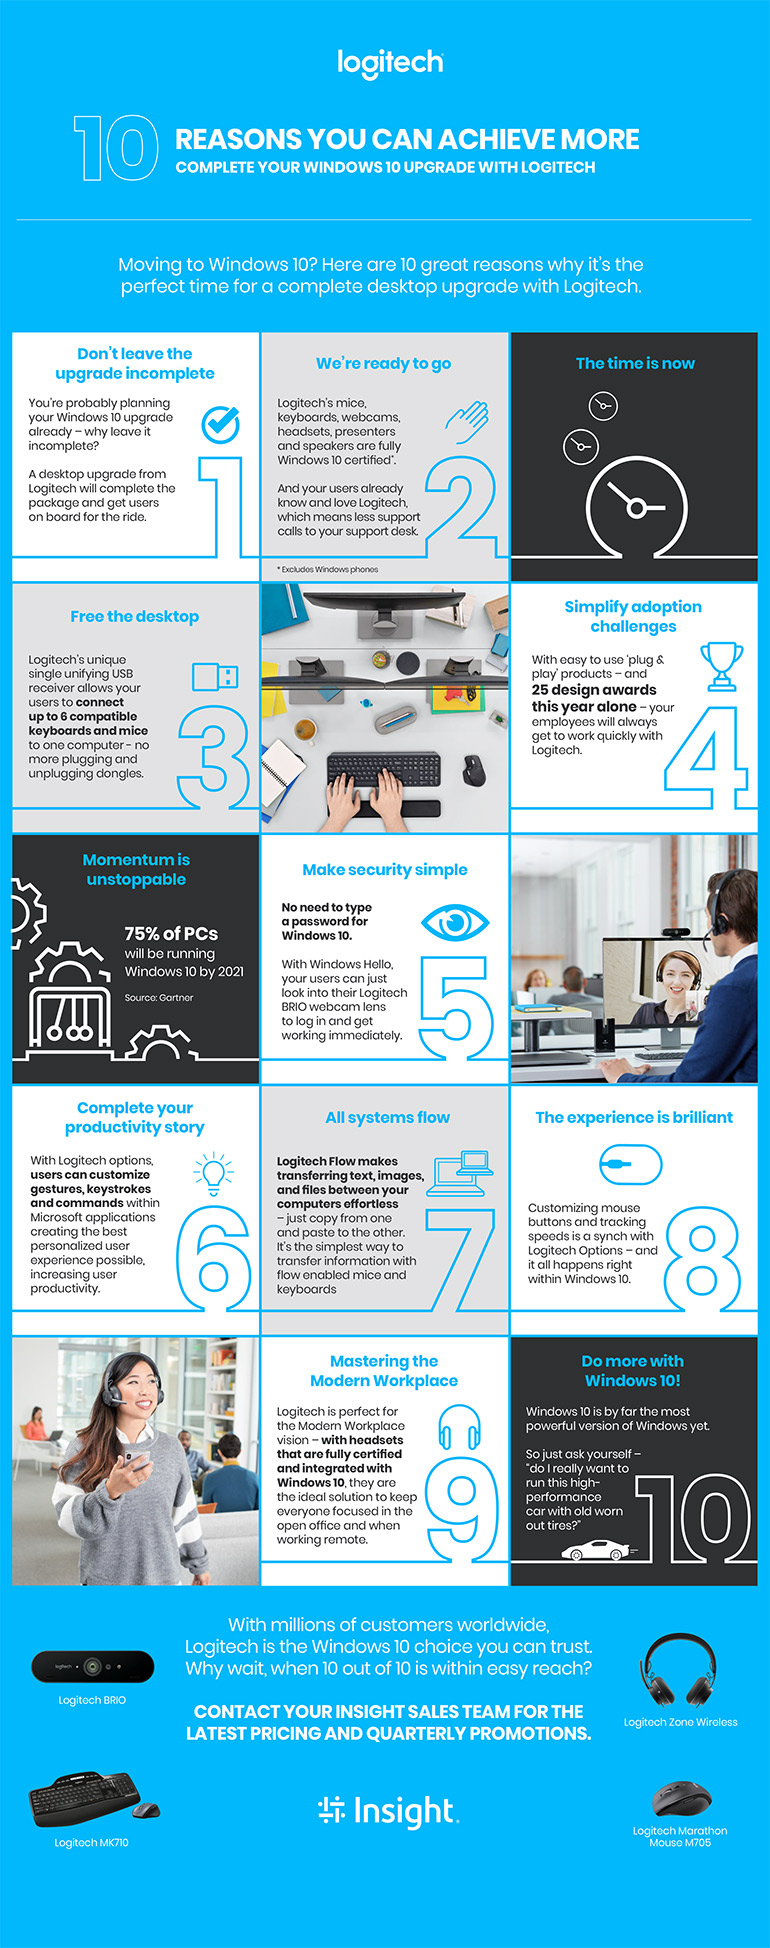 10 Reasons Why Logitech Will Complete Your Windows 10 Upgrade infographic as transcribed below